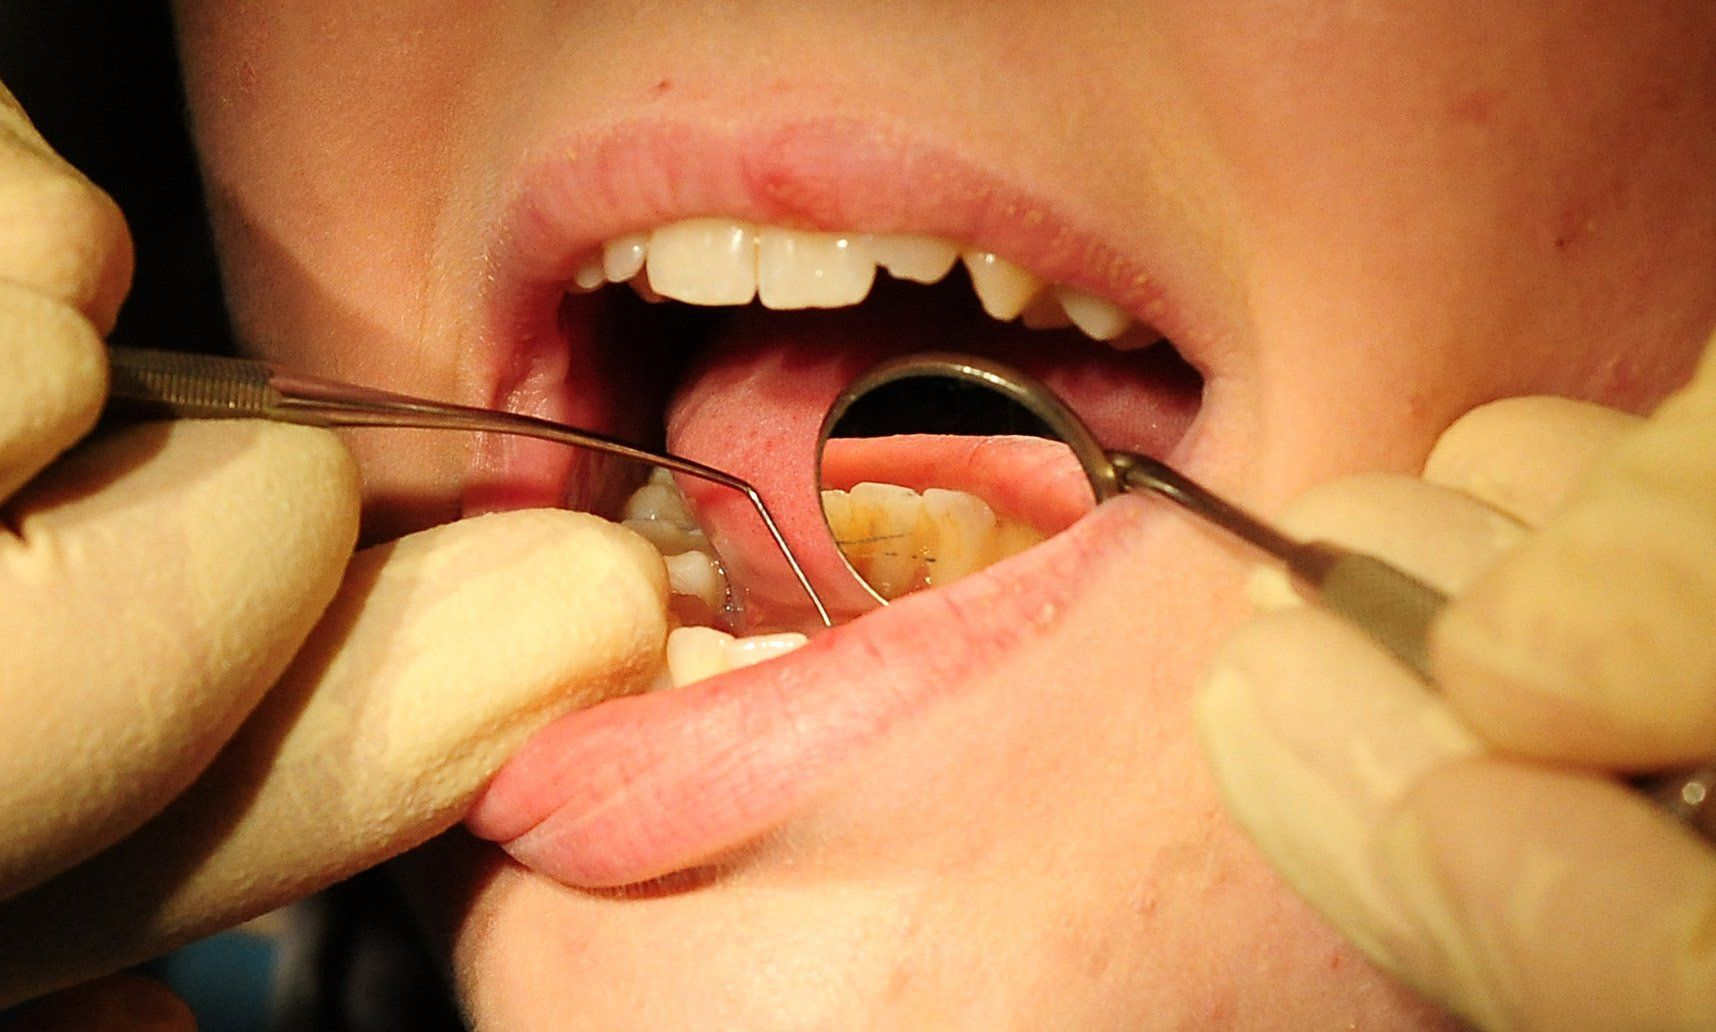 Snacks fuel tooth decay - even if you brush, says study